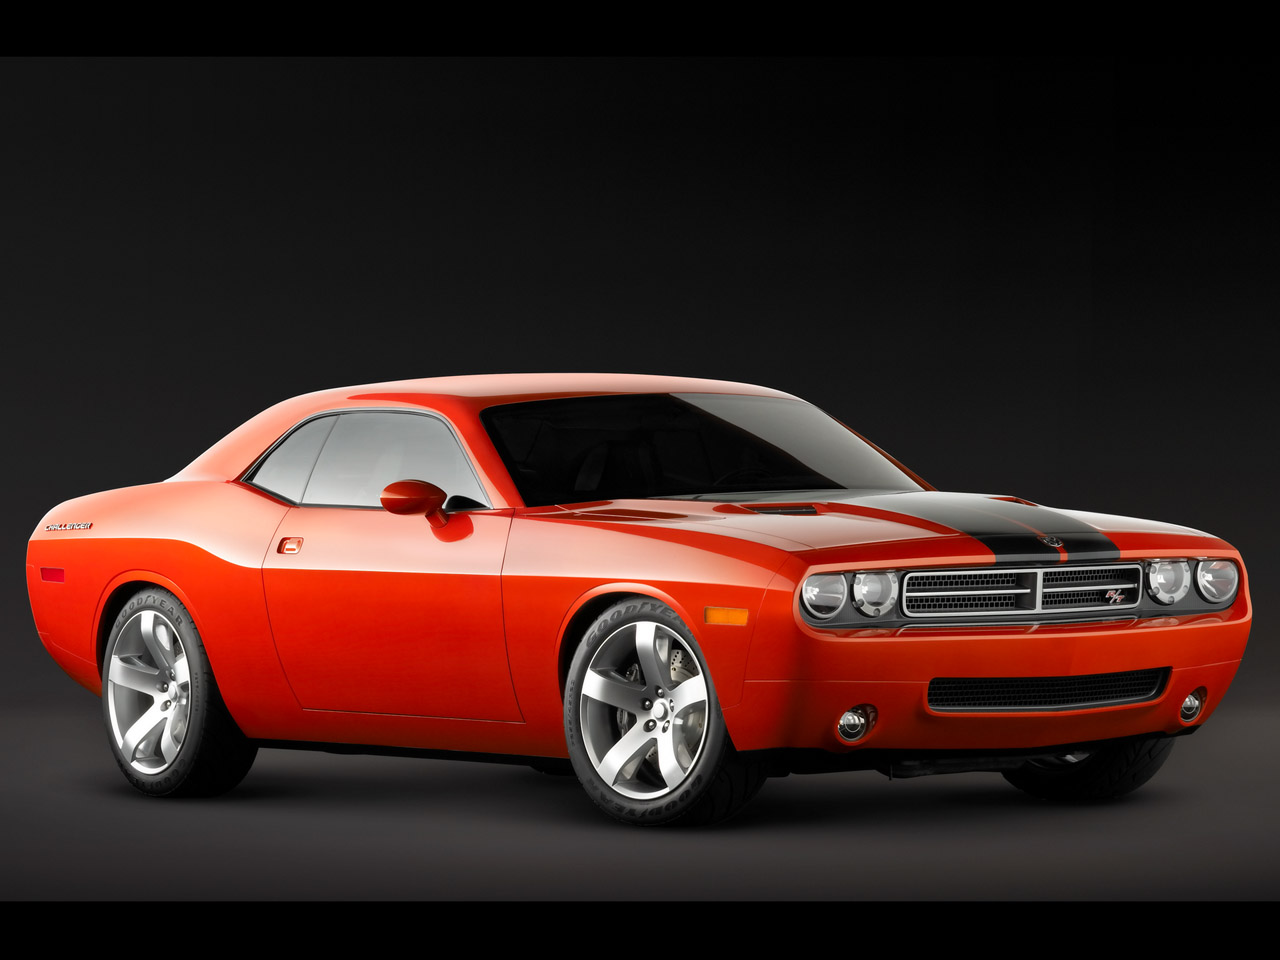 Used Dodge Cars For Sale in Hybla Valley